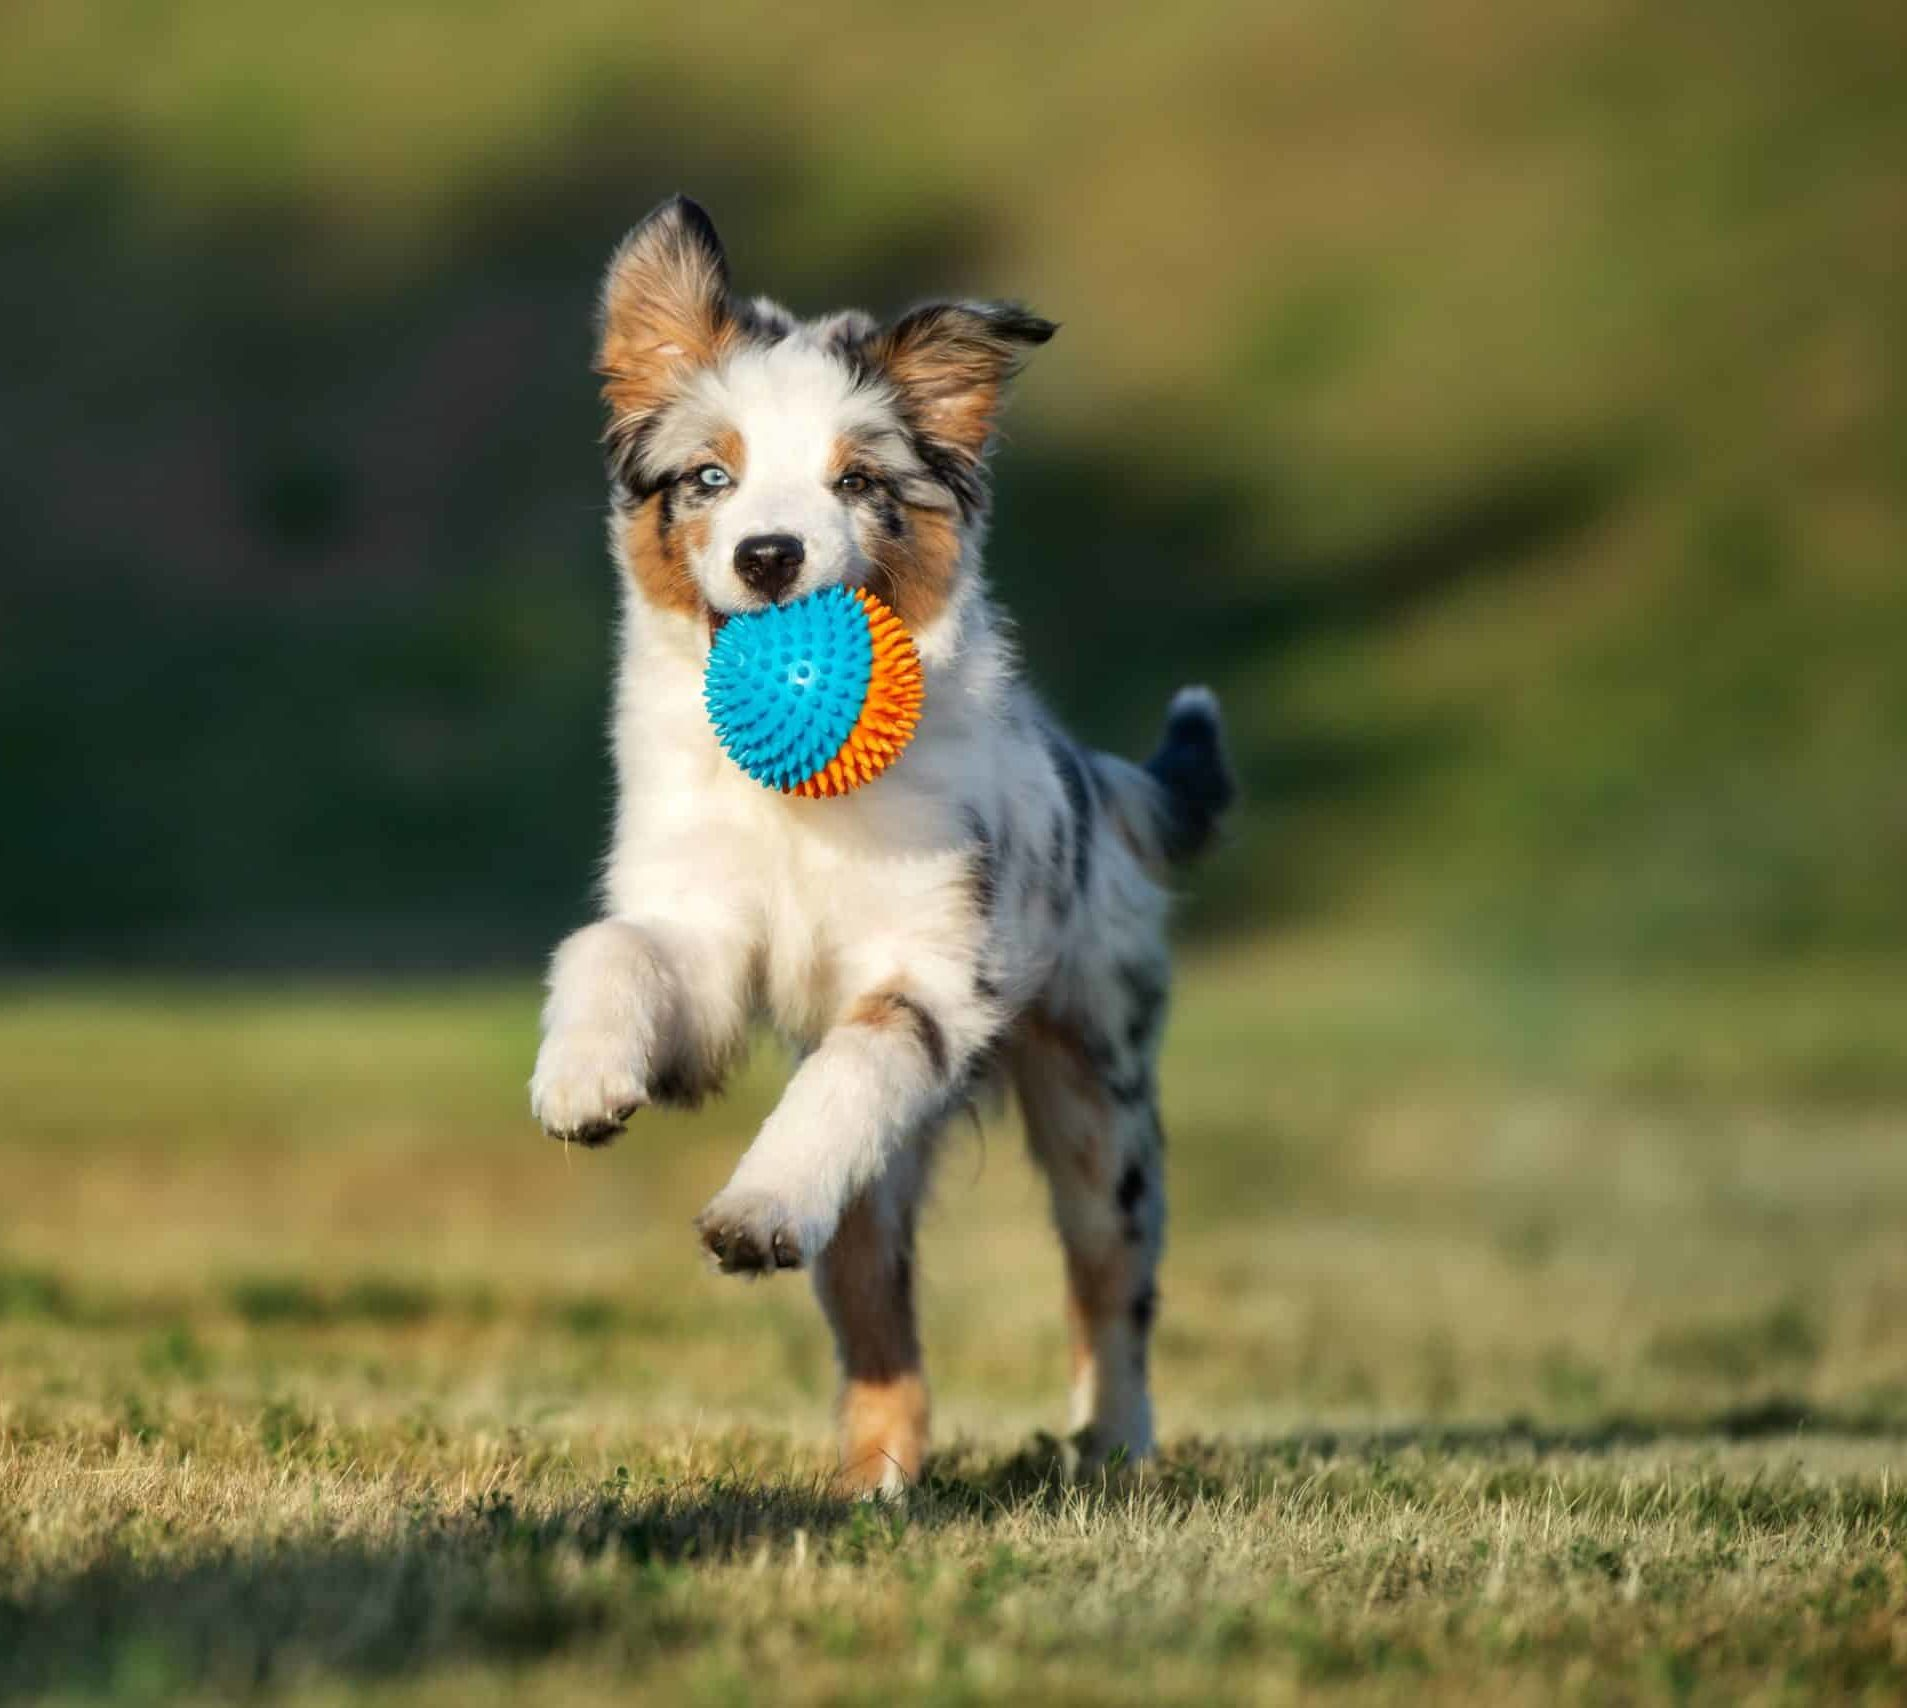 Australian Shepherd puppy plays fetch. Playing puppy games like fetch helps prevent boredom and provide a fun, easy way to teach your puppy basic commands.